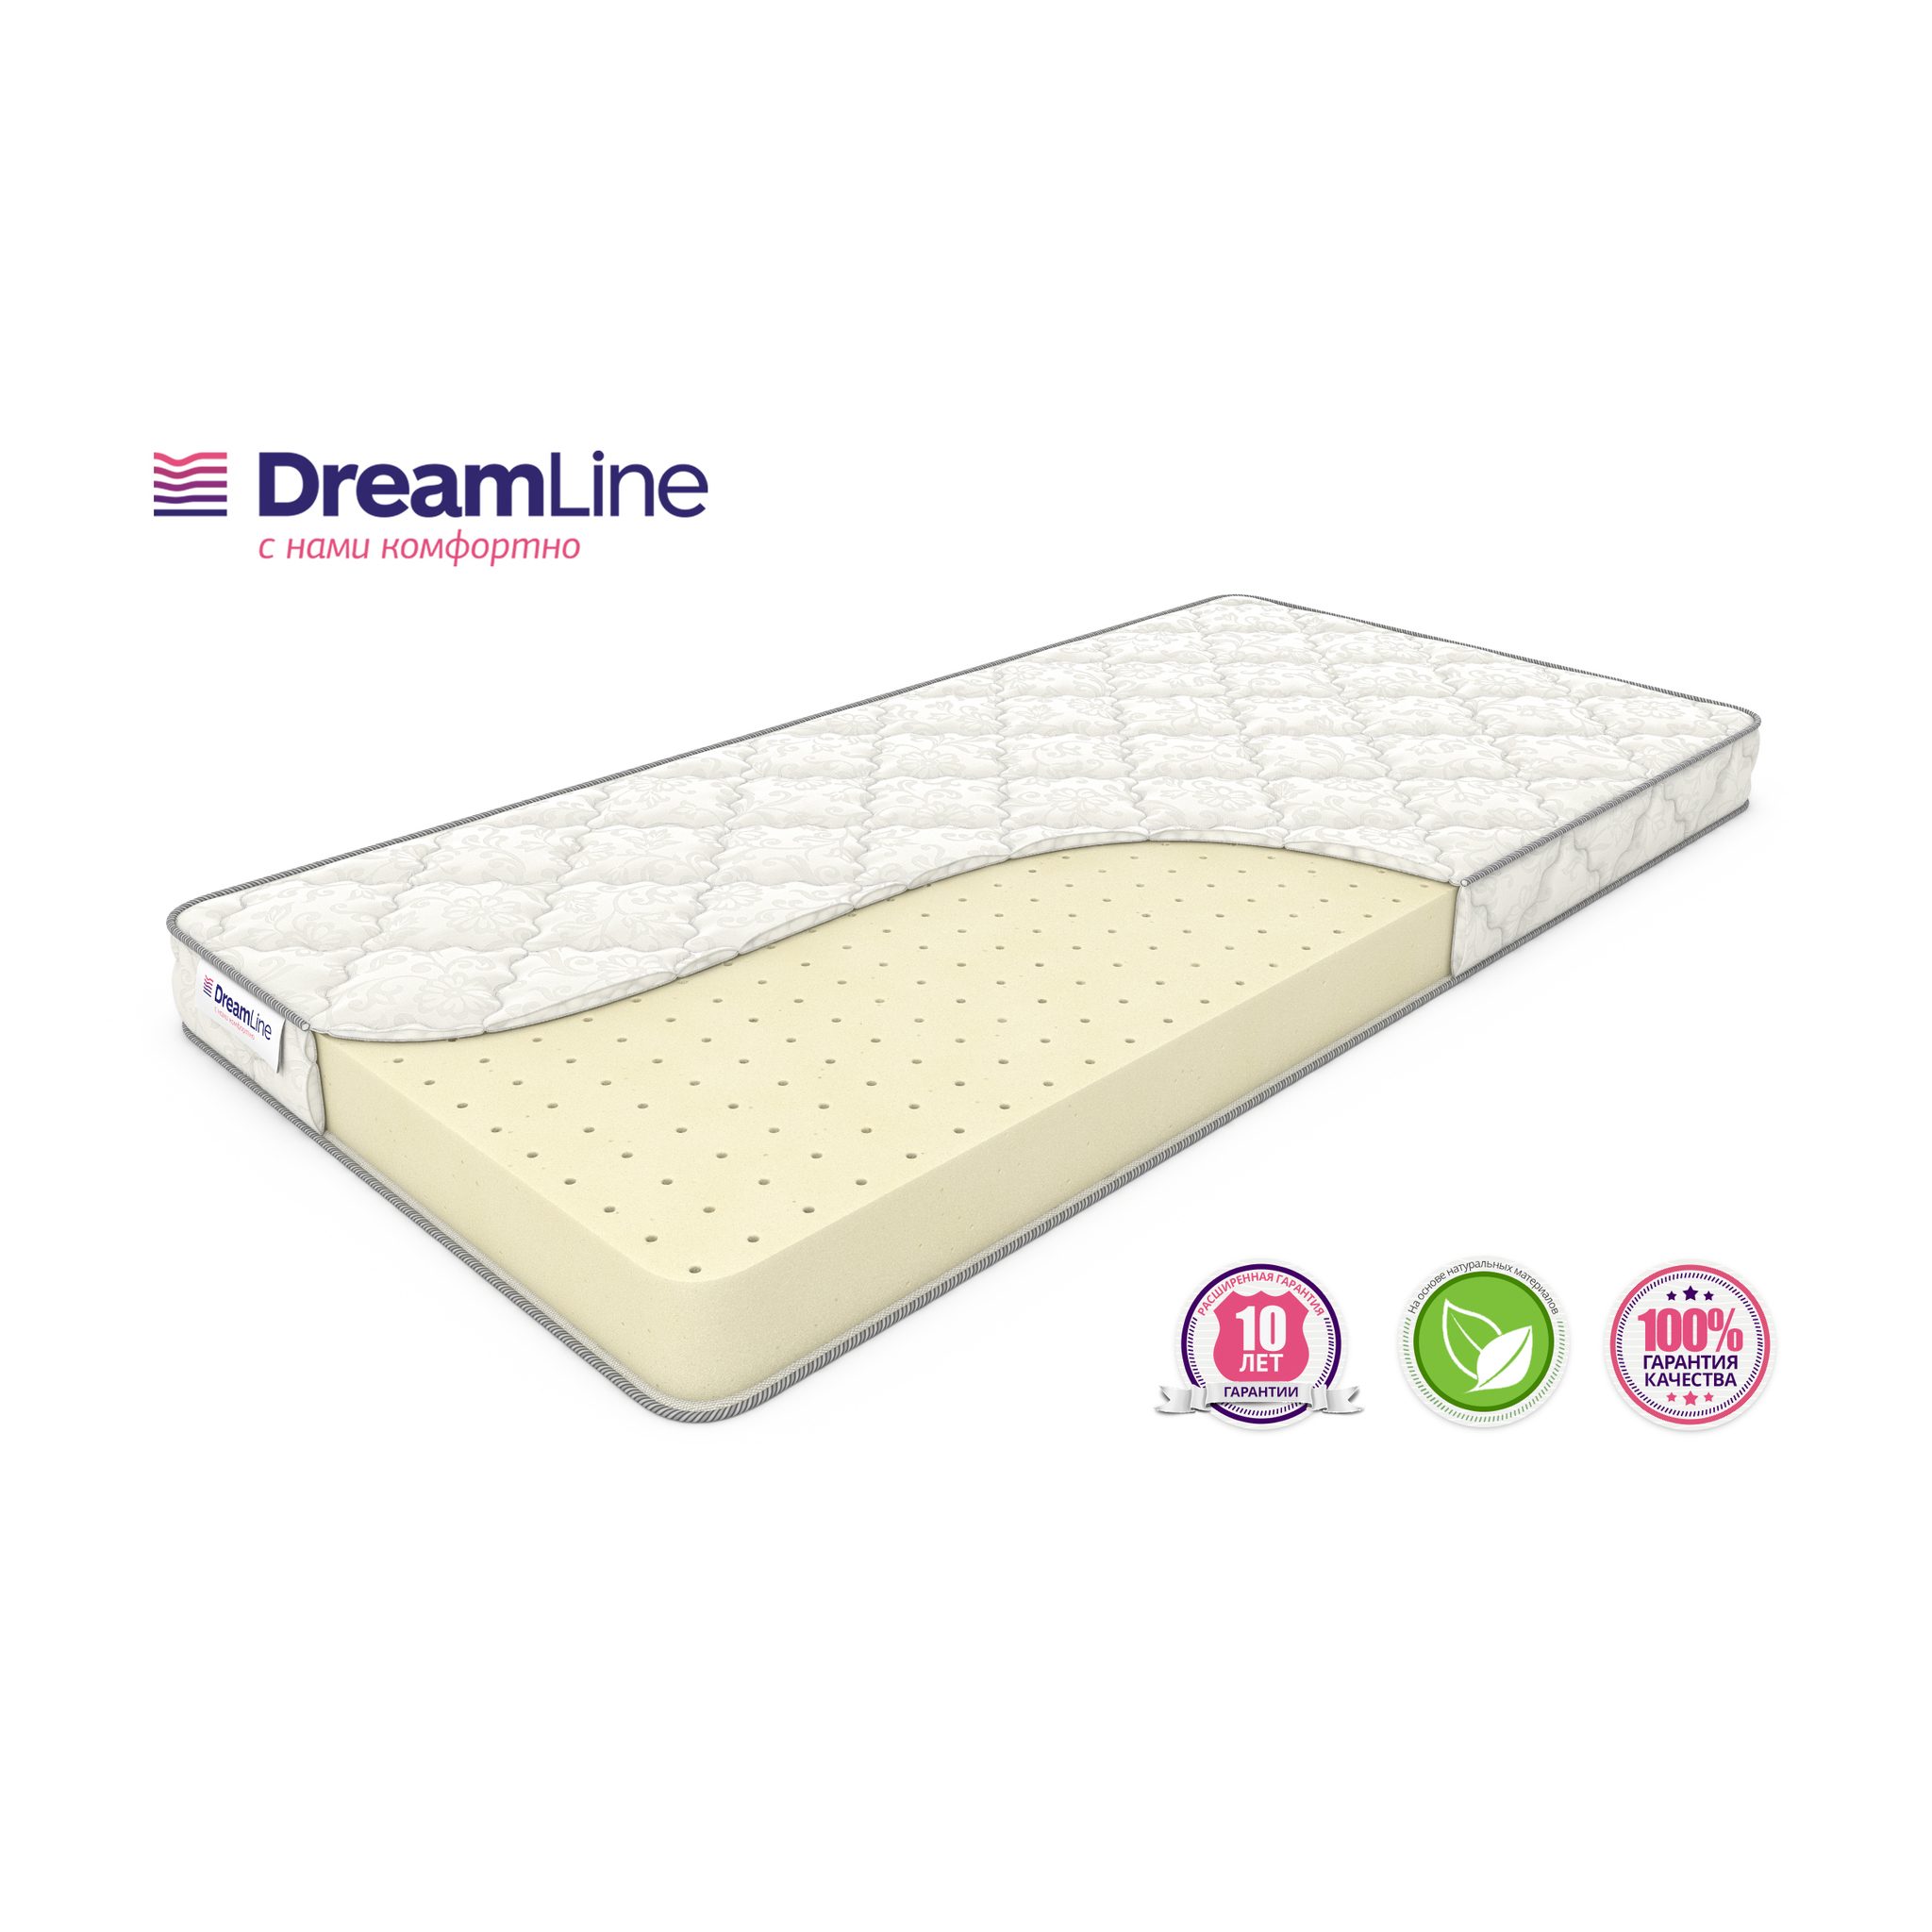 Матрас DreamLine Soft Slim (80x200) фото